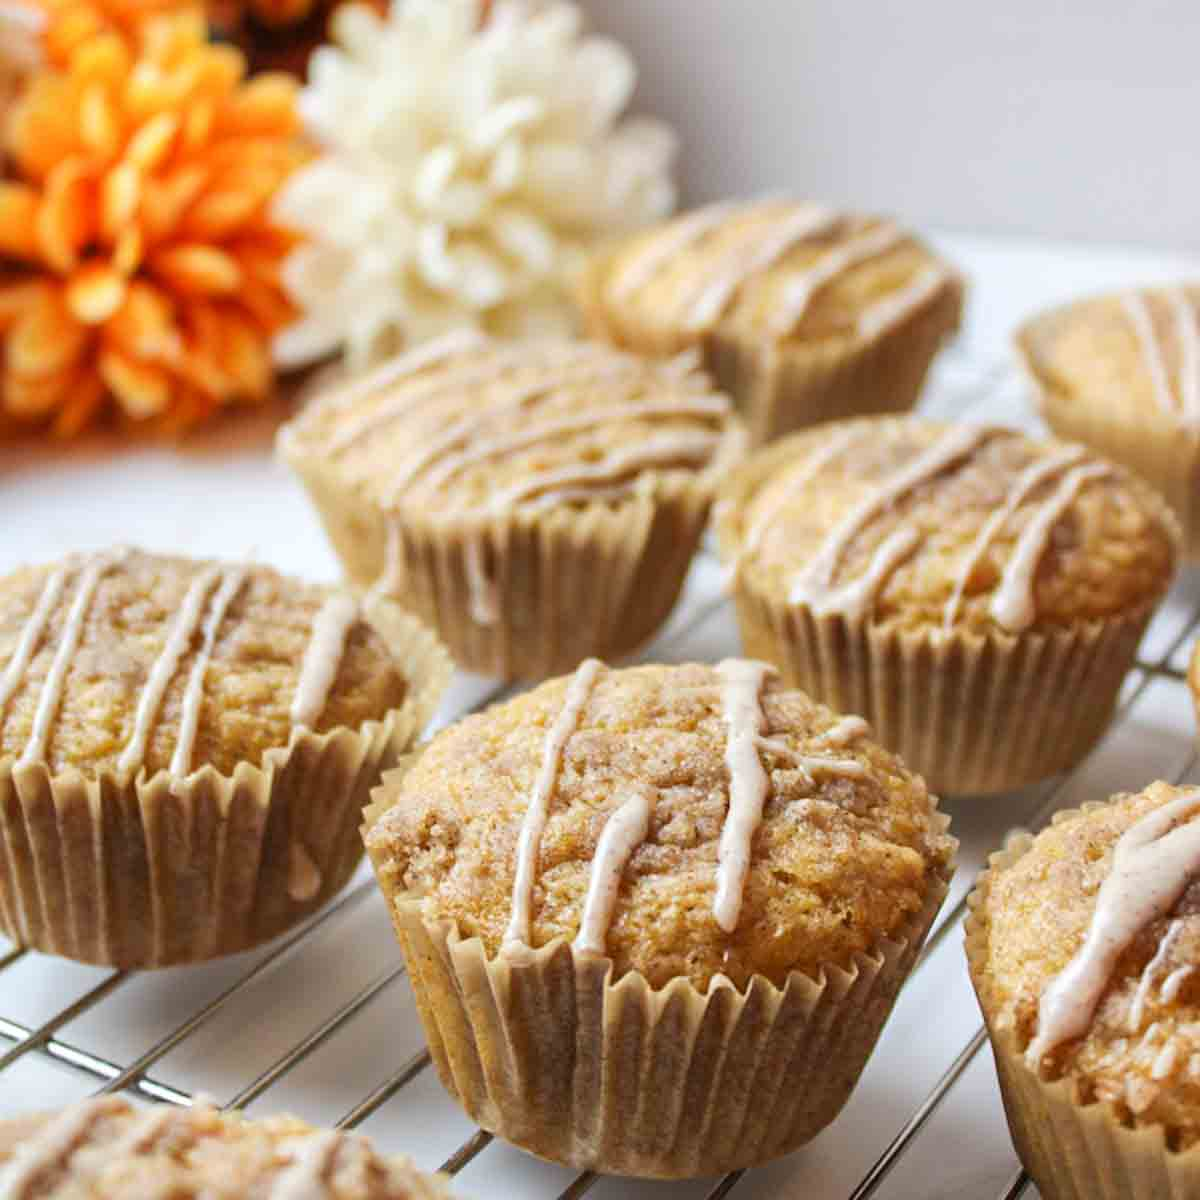 an upclose view of sweet potato muffins on a wire rack